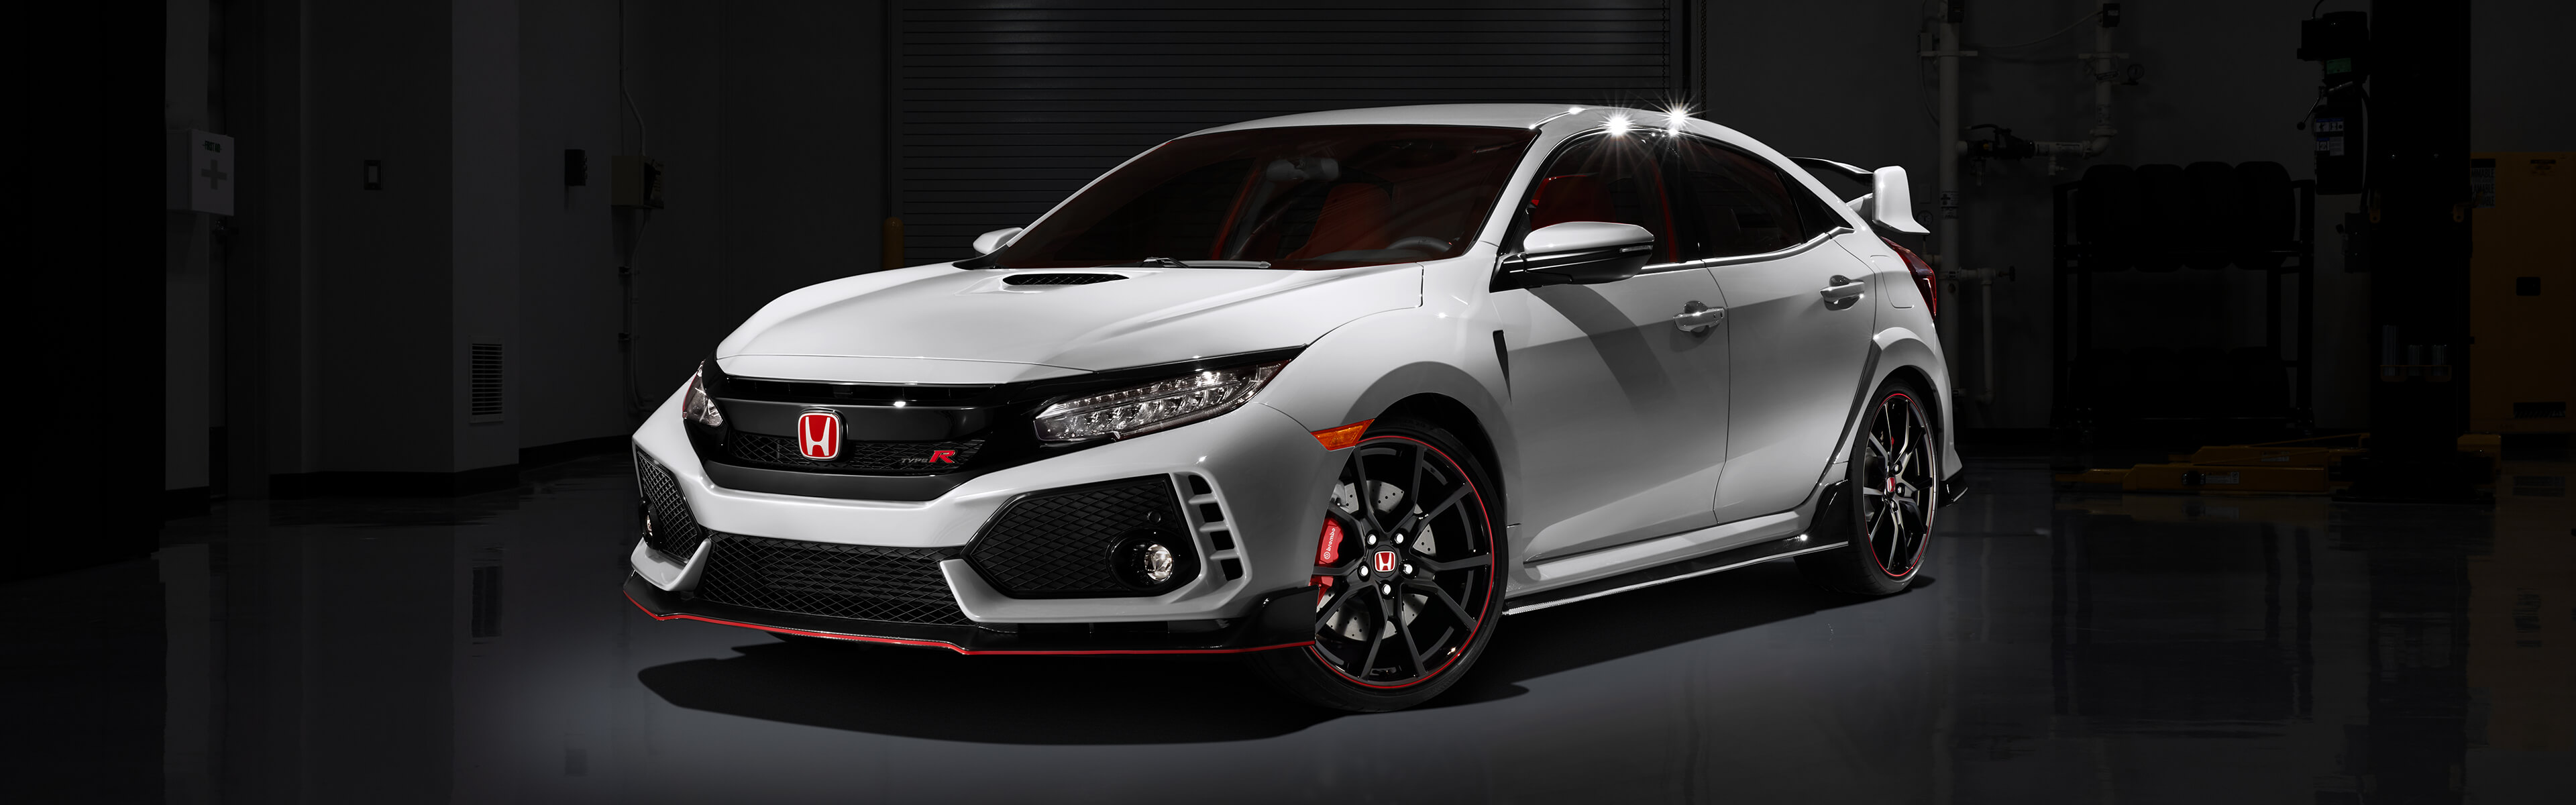 2018 civic type r owners manual